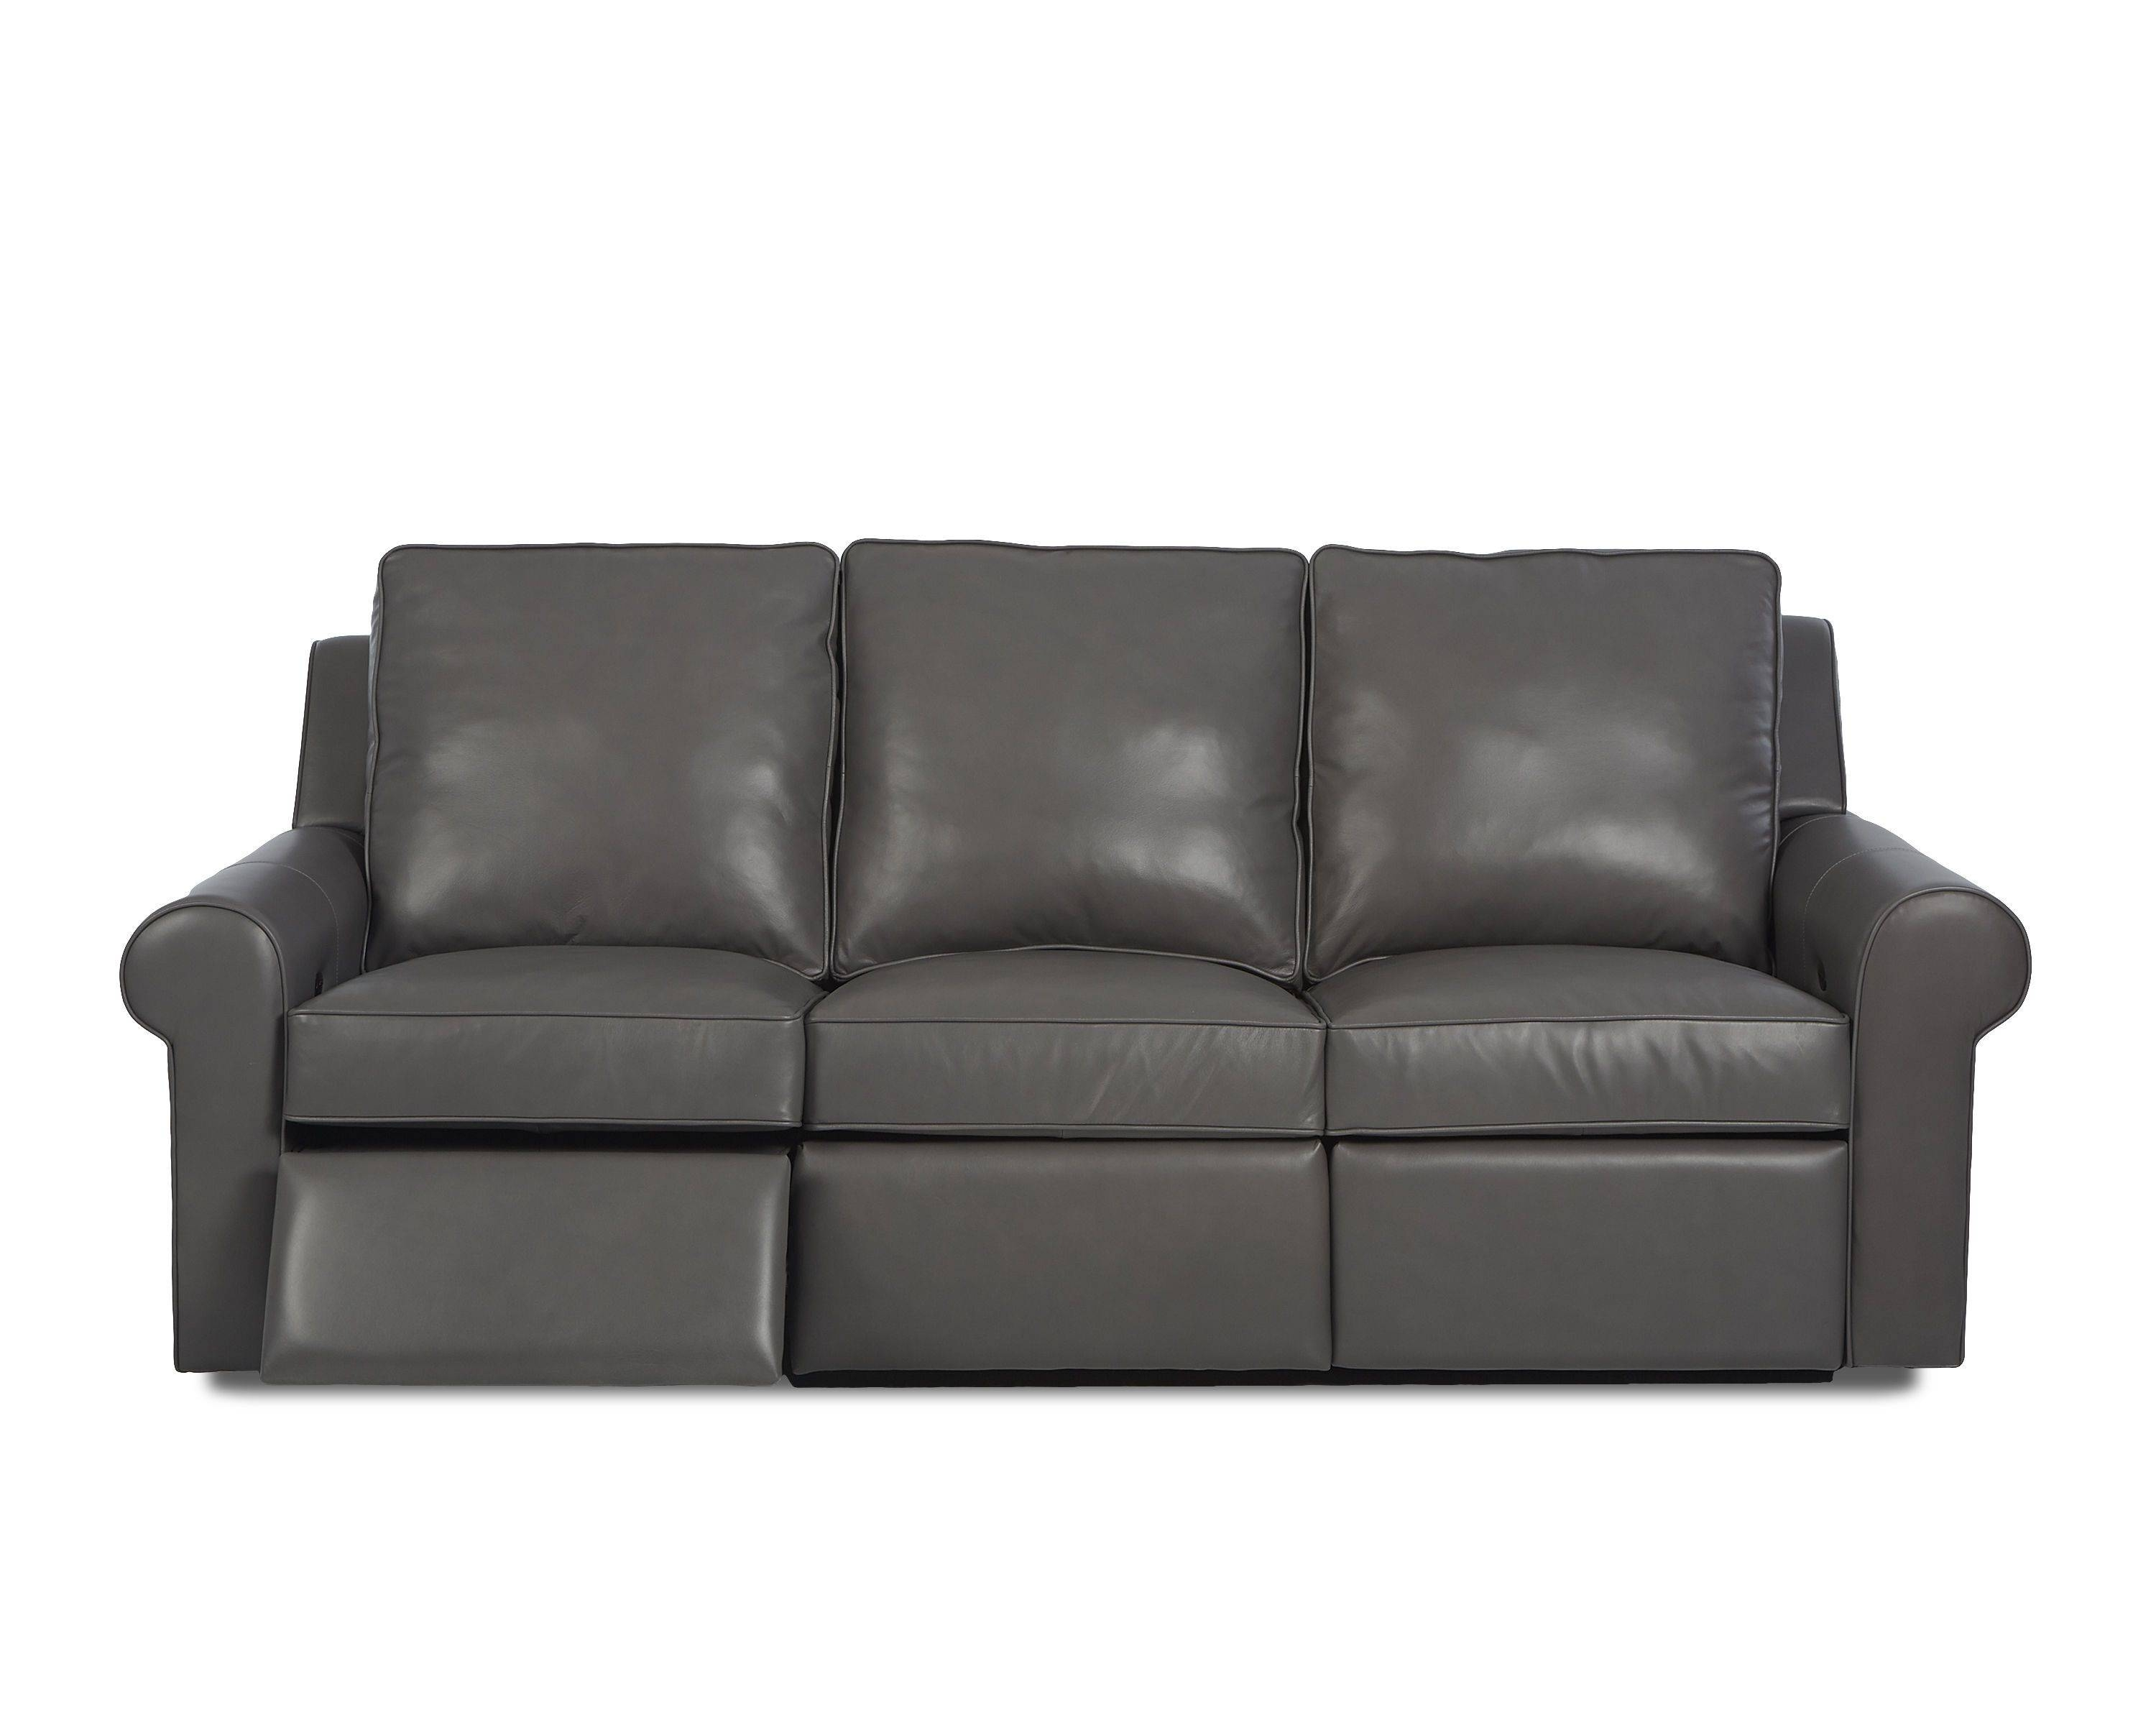 Bauhaus Sectional Sofas – Leather Sectional Sofa Within Bauhaus Sectional Sofas (View 21 of 30)